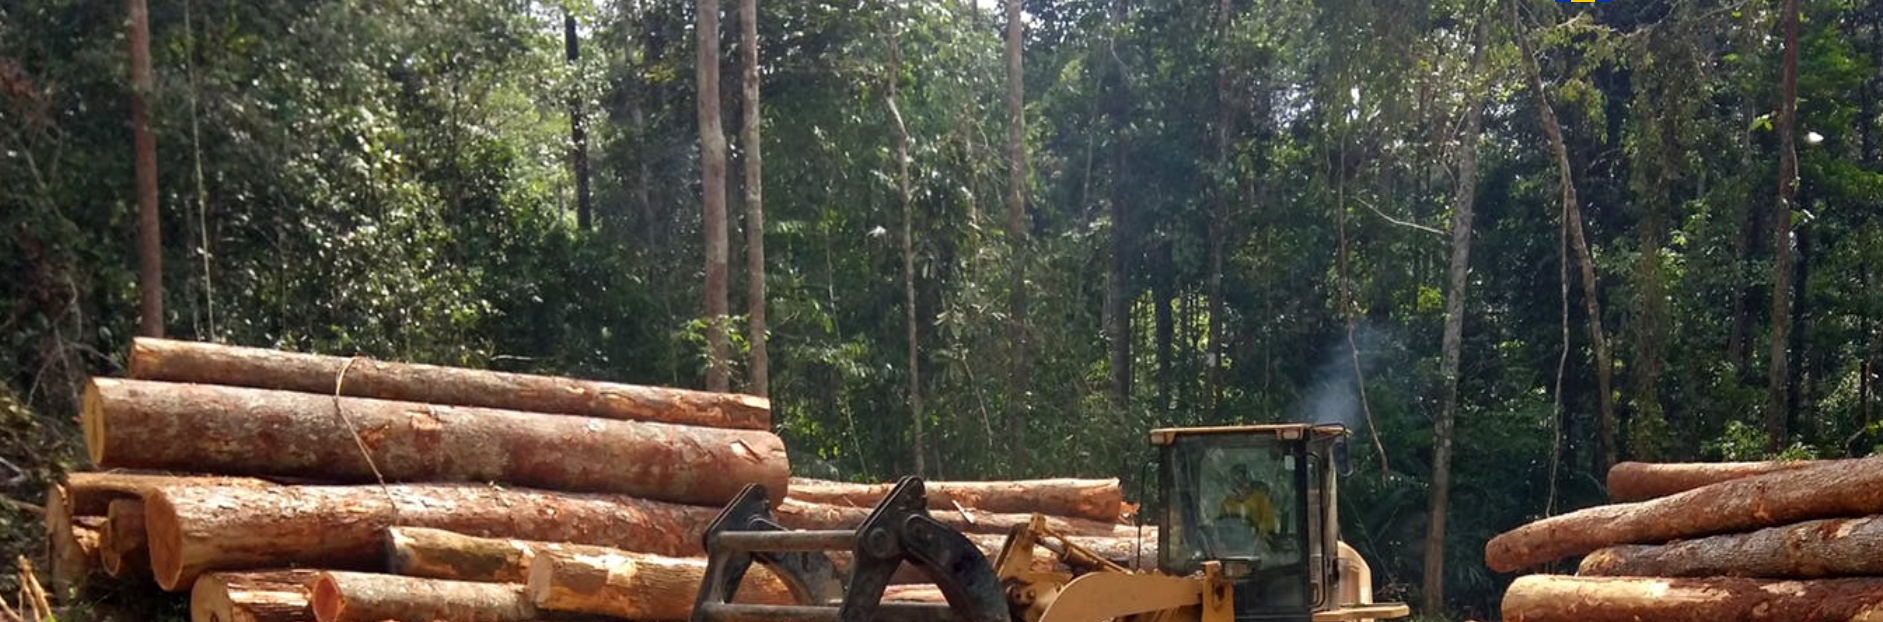 Photo of Message to the EU: you have the chance to stop fuelling devastation in the Amazon